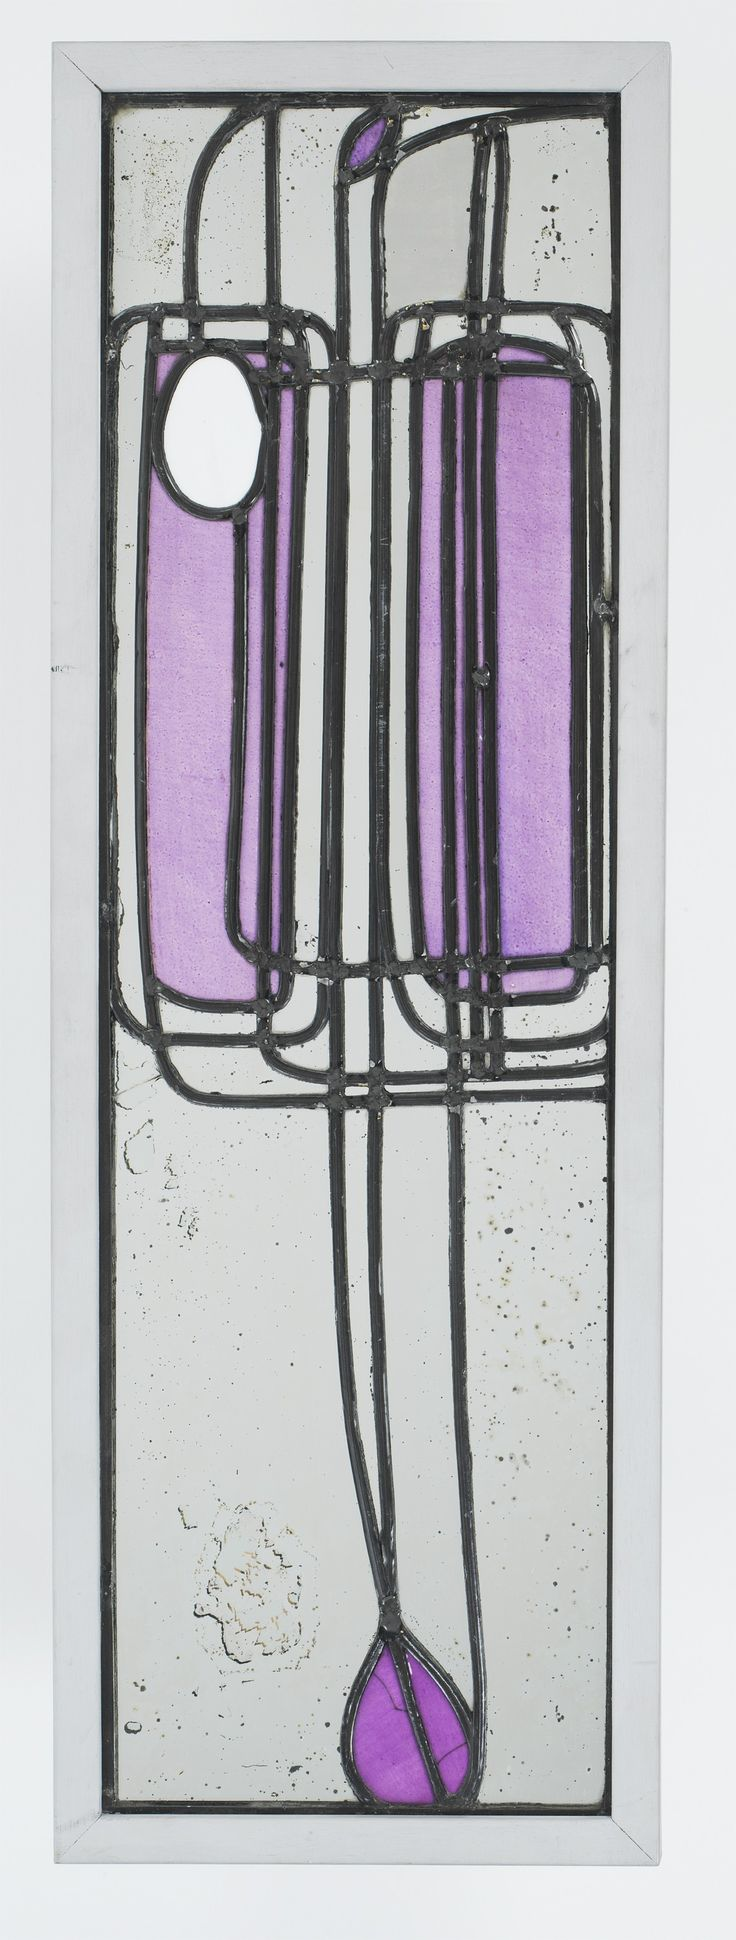 "Art Nouveau - Vitrail du ""Willow Tea Rooms"" - Charles Rennie Mackintosh"